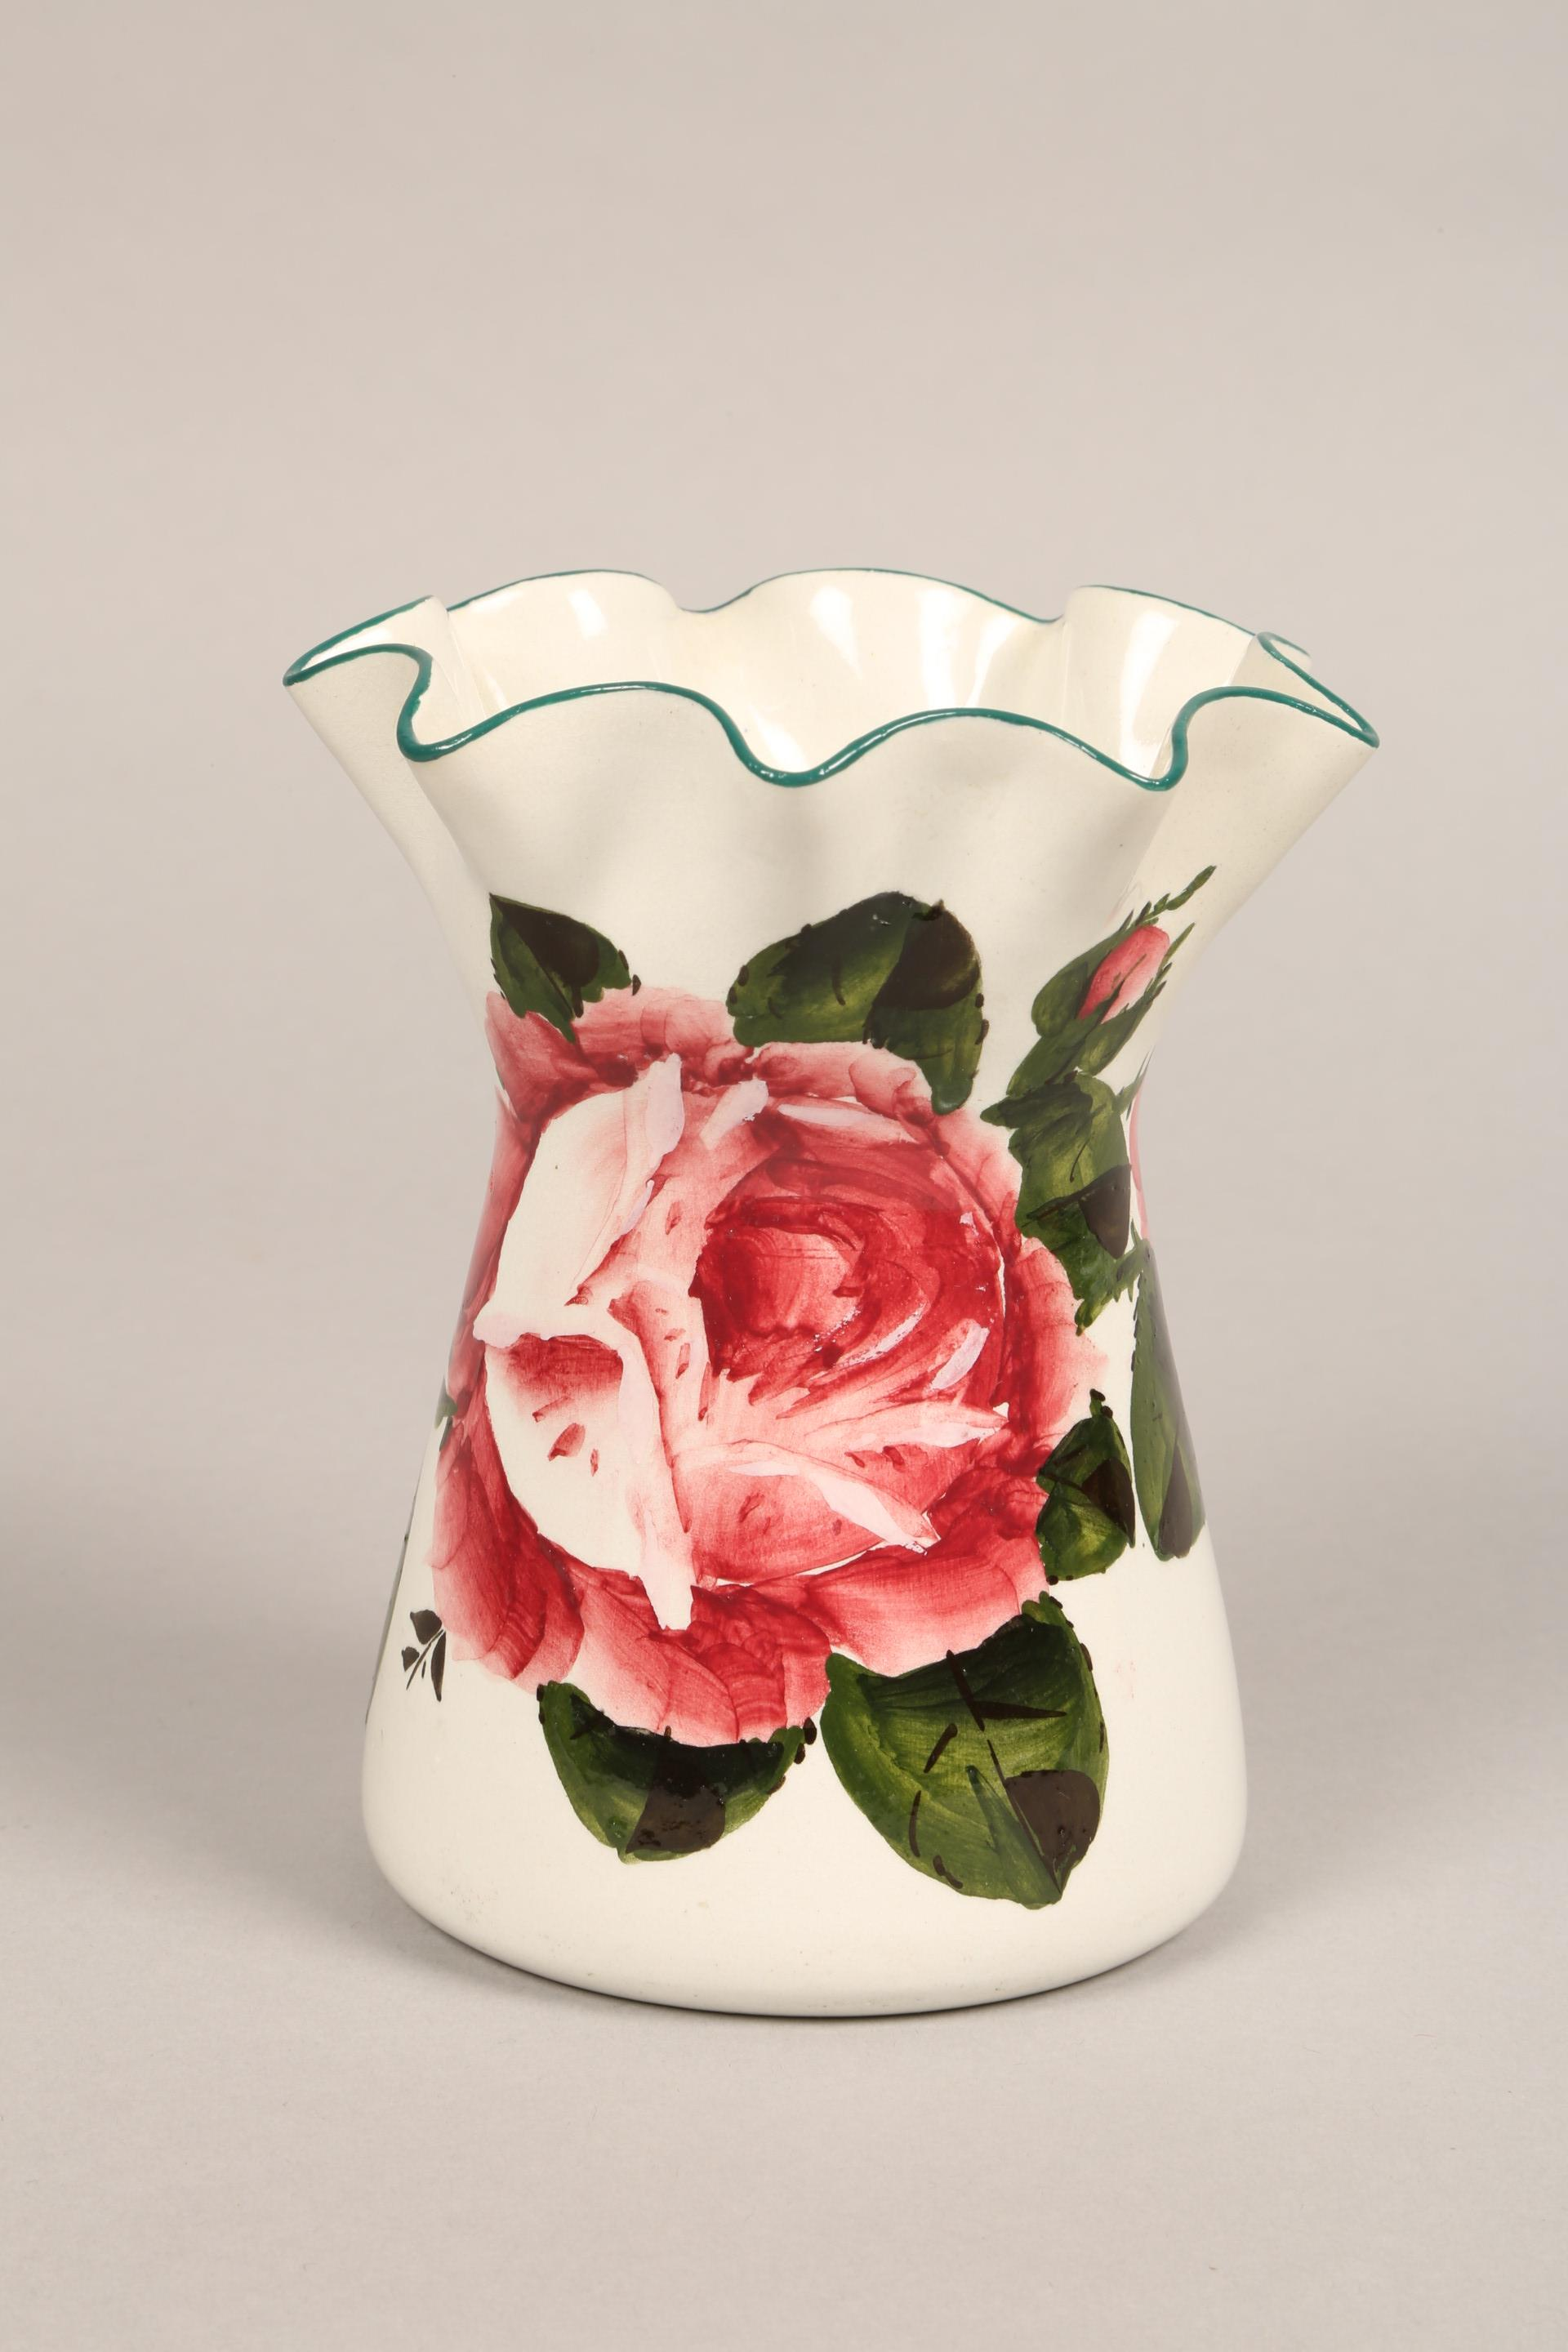 Wemyss pottery vase, lobed rim, hand painted with cabbage roses, incised Wemyss and retailers - Image 2 of 10